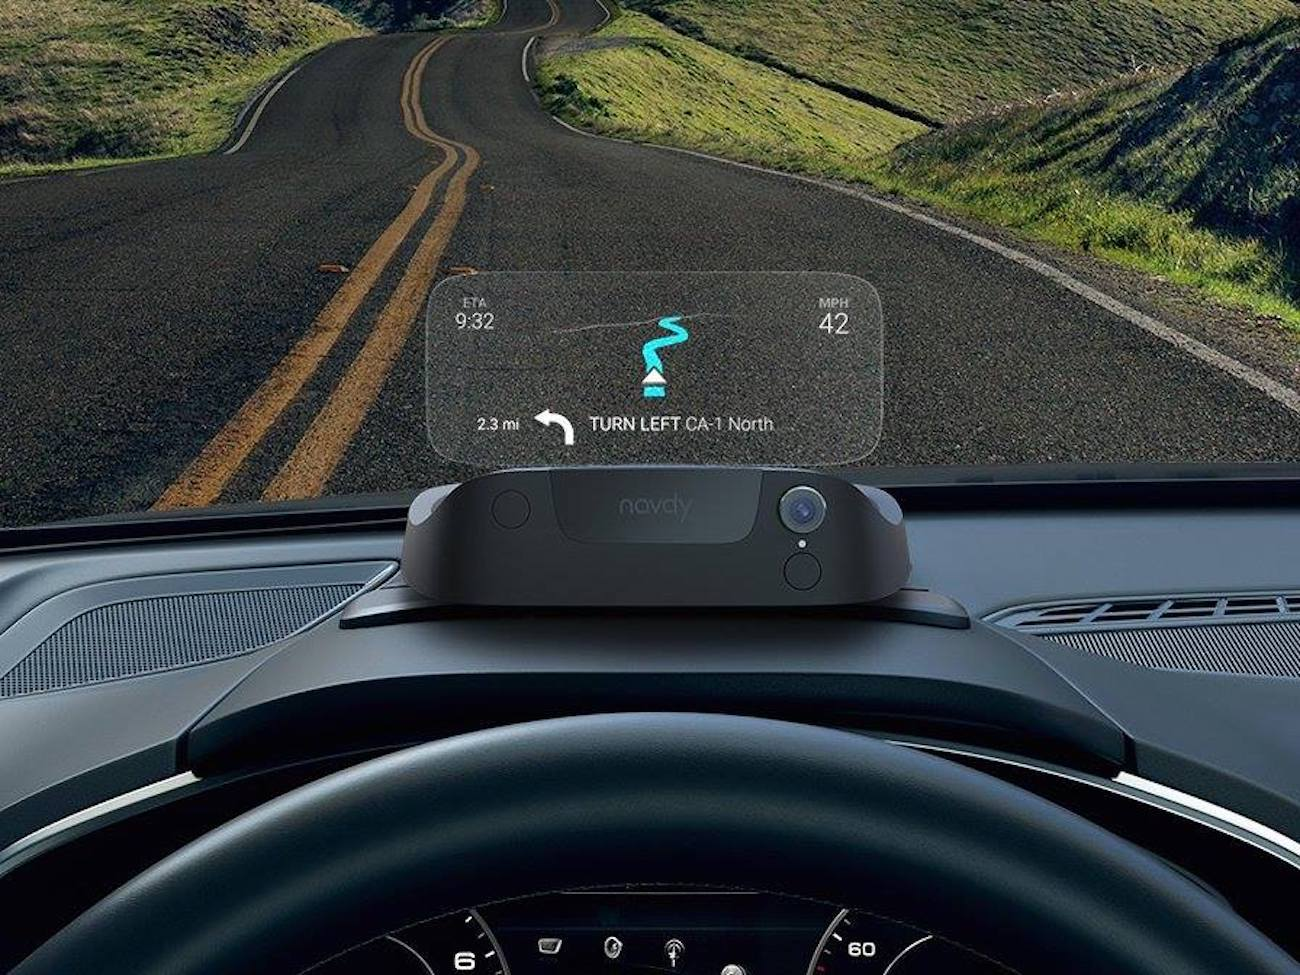 Navdy Portable Head-Up Display   Retain your eyesight on the road and let the Navdy Portable Head-Up Display take care of the navigation.